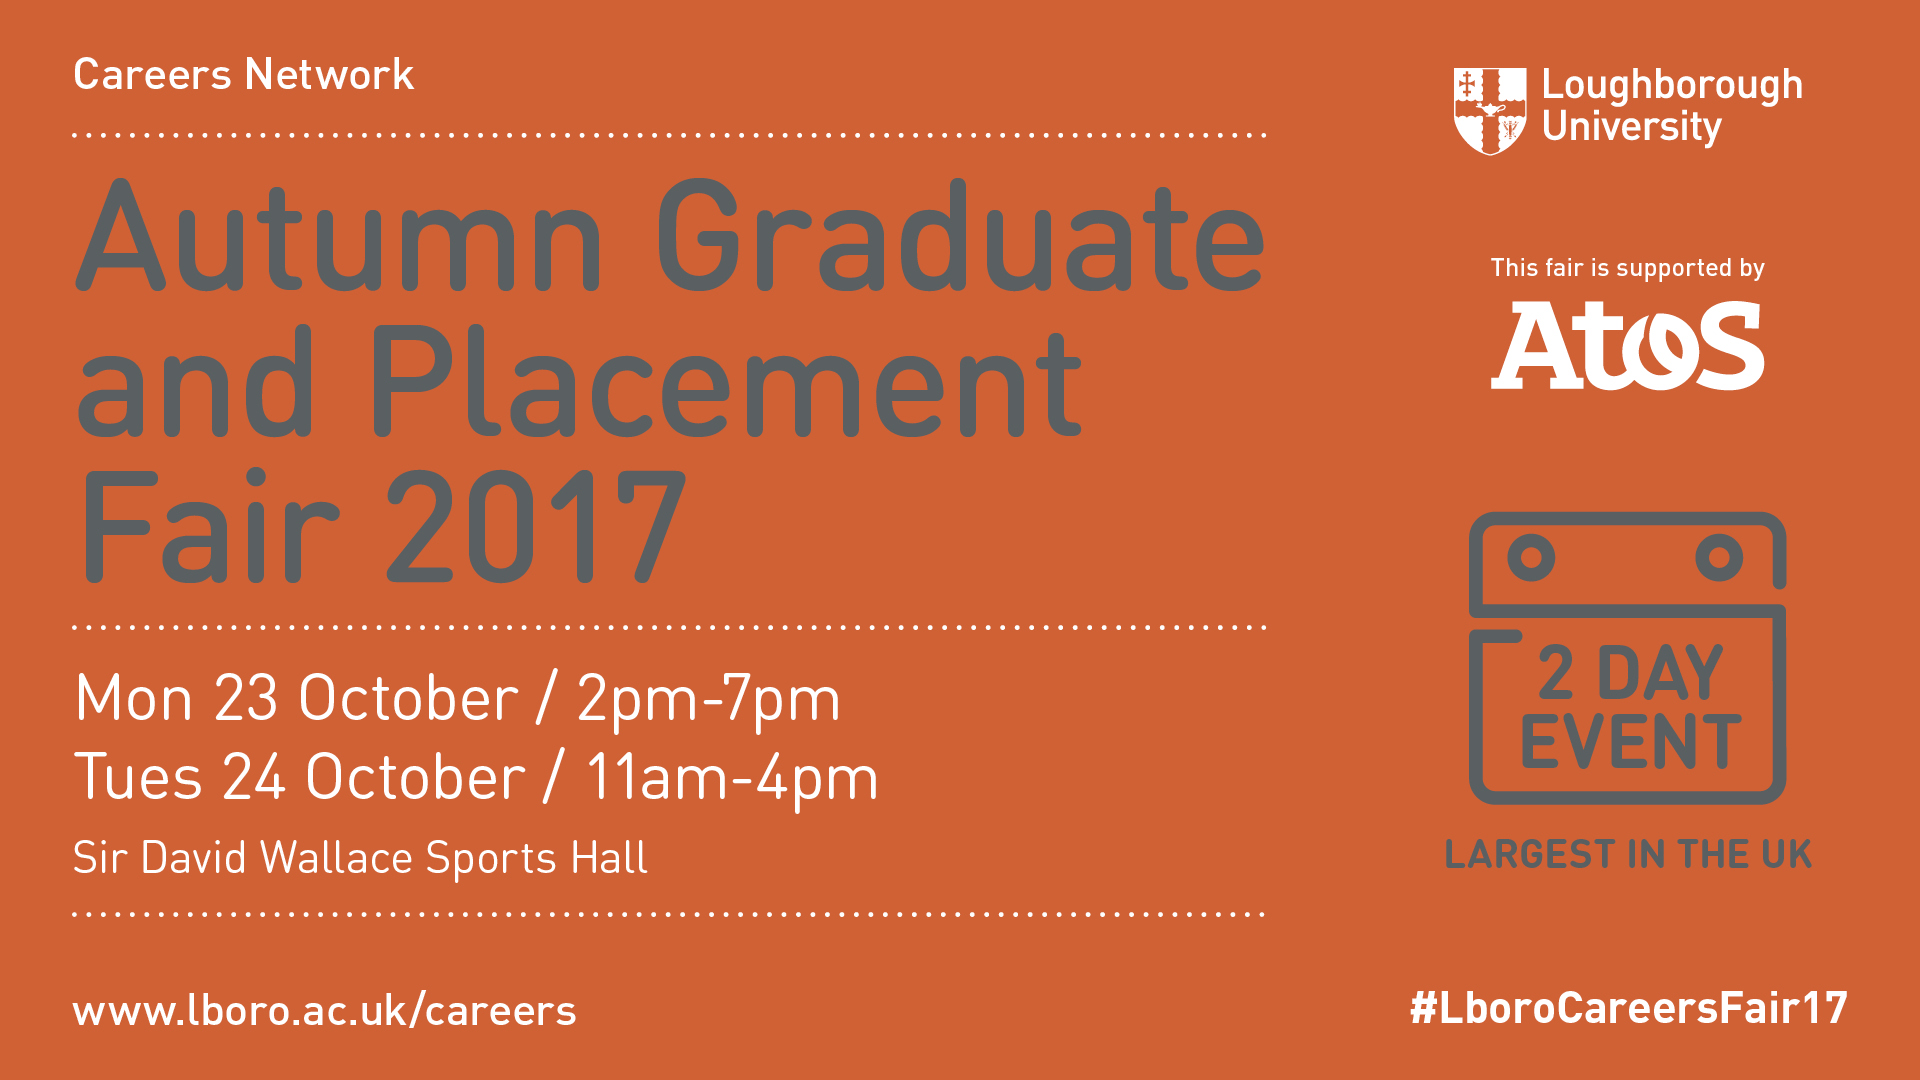 Why Freshers should attend the Graduate and Placement Fair